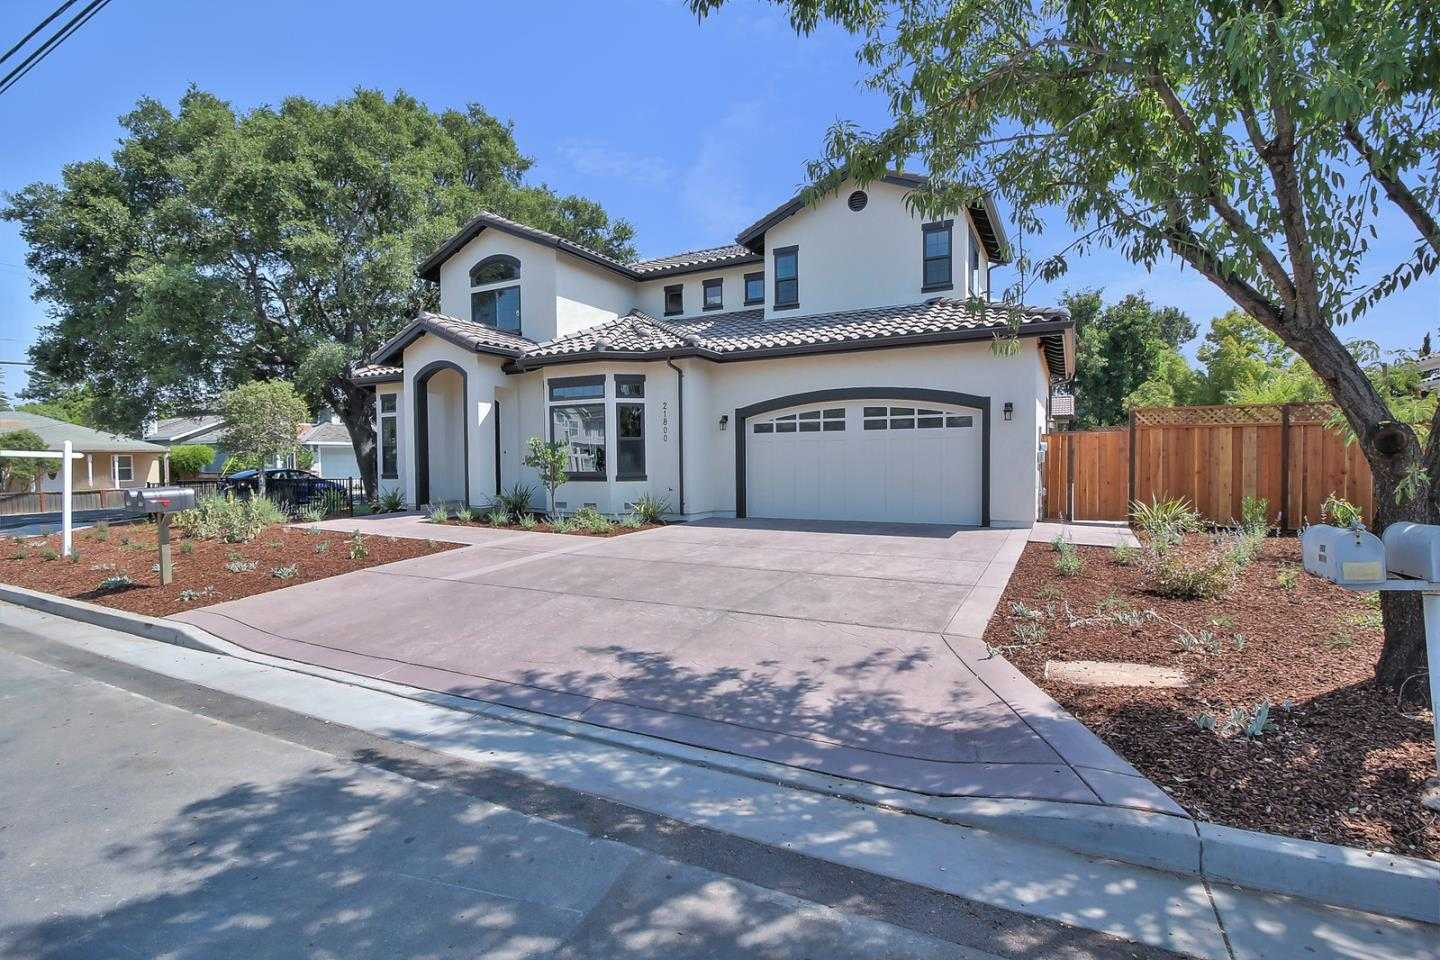 $3,600,000 - 5Br/4Ba -  for Sale in Cupertino